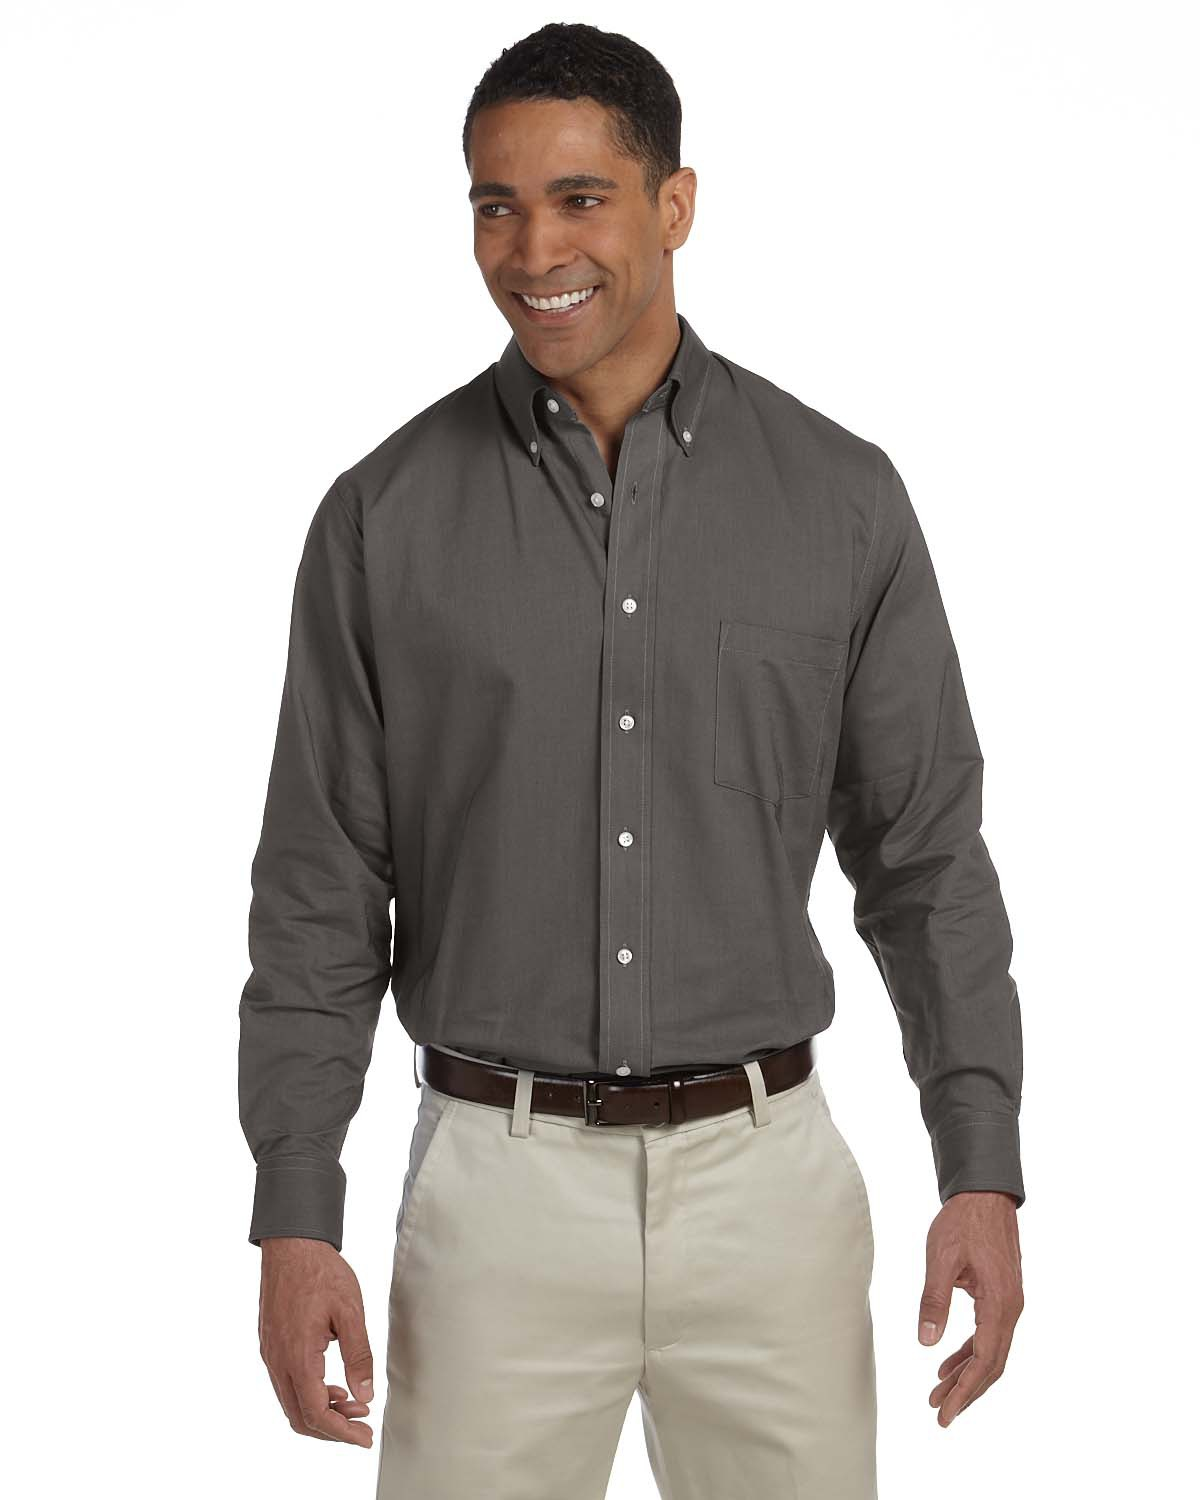 56800 Van Heusen Long Sleeve Wrinkle-Free Oxford - 57800-13v0040